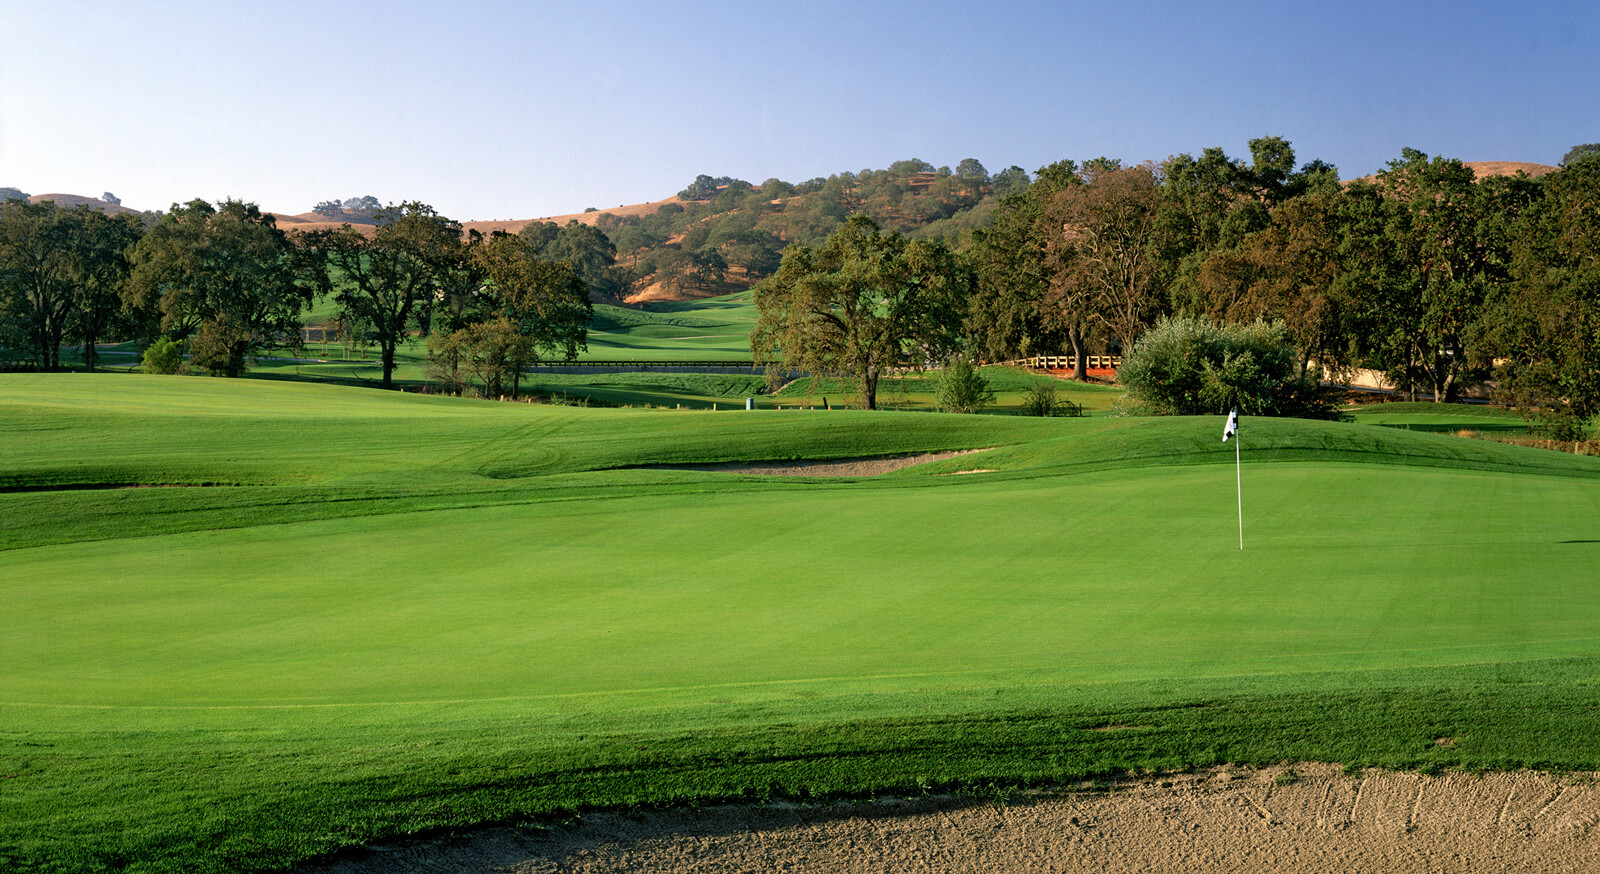 Hacker Hills Golf Club